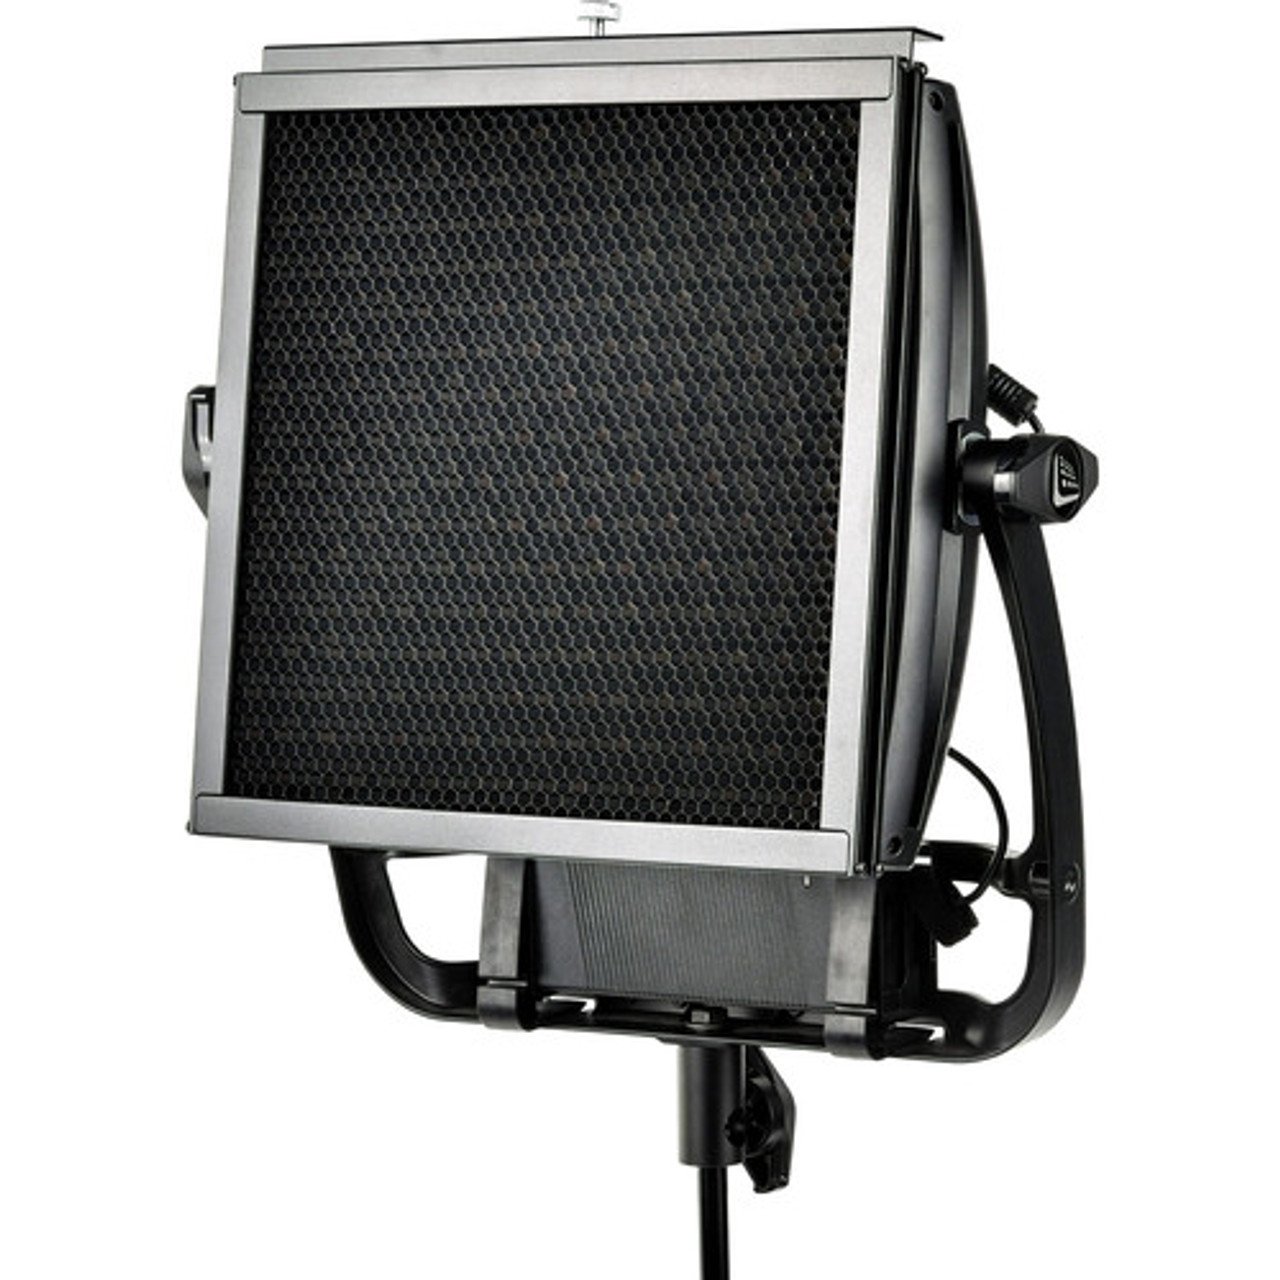 Litepanels 900-3534 Honeycomb Grid 60 Degree Astra Direct Fit